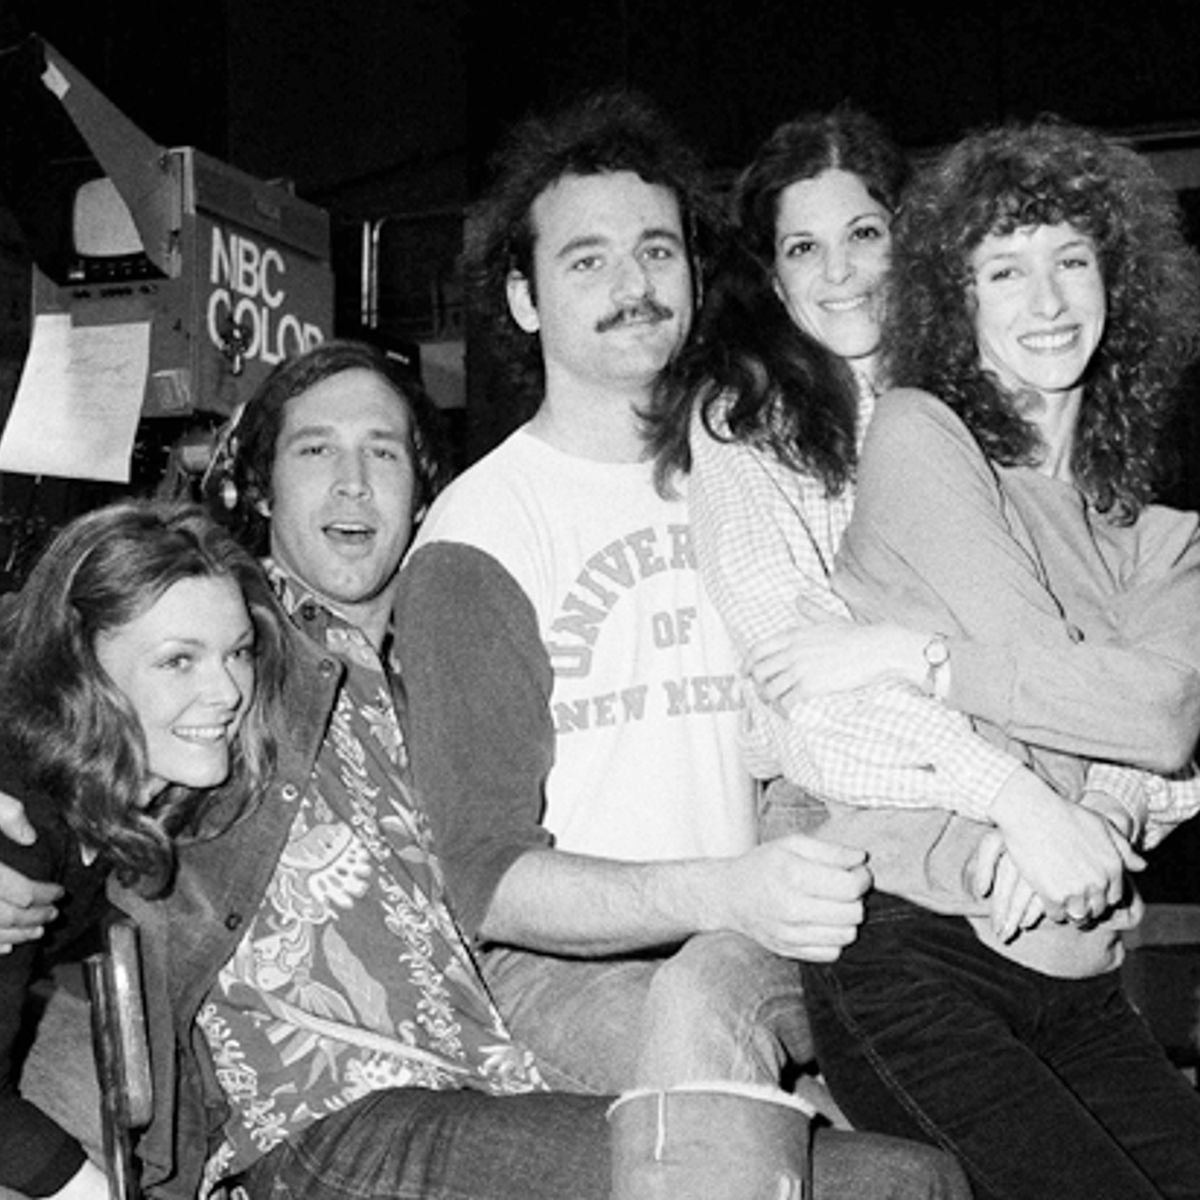 """SNL""'s insane first show: Behind-the-scenes secrets of Chase, Belushi and more, 40 years ago this weekend"